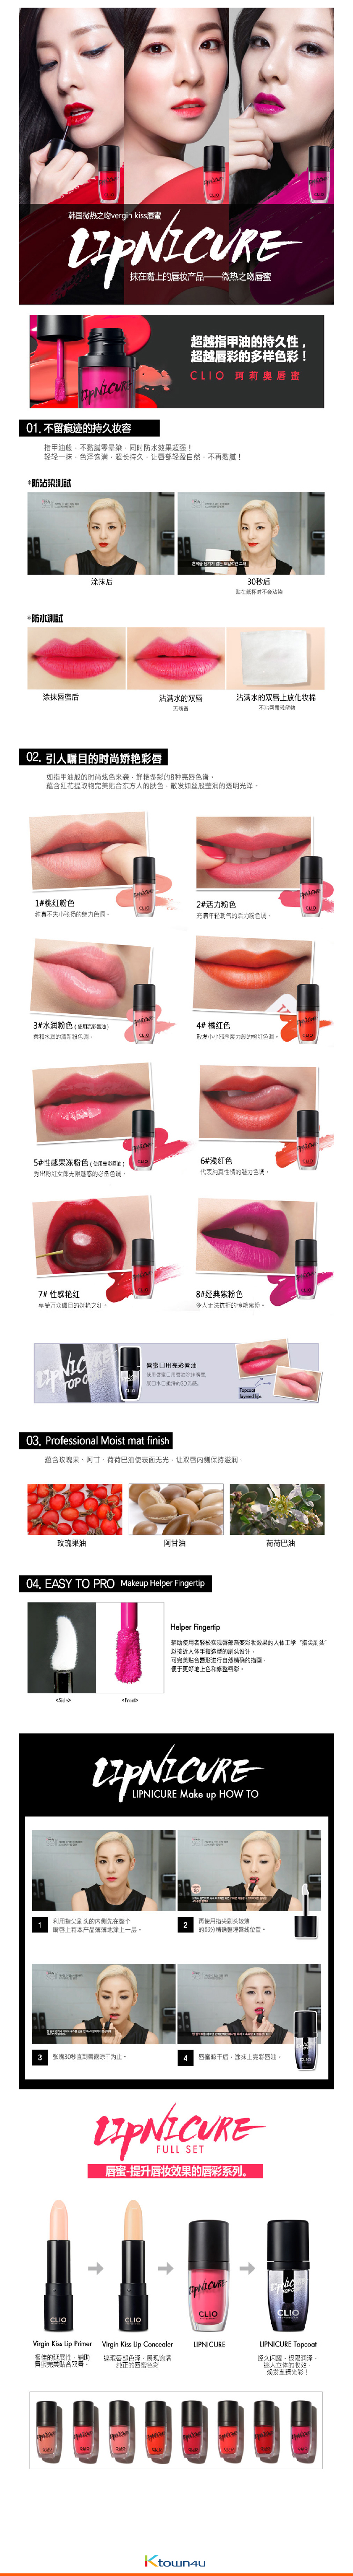 Clio Virgin Kiss Lipnicure F/W Trend Color